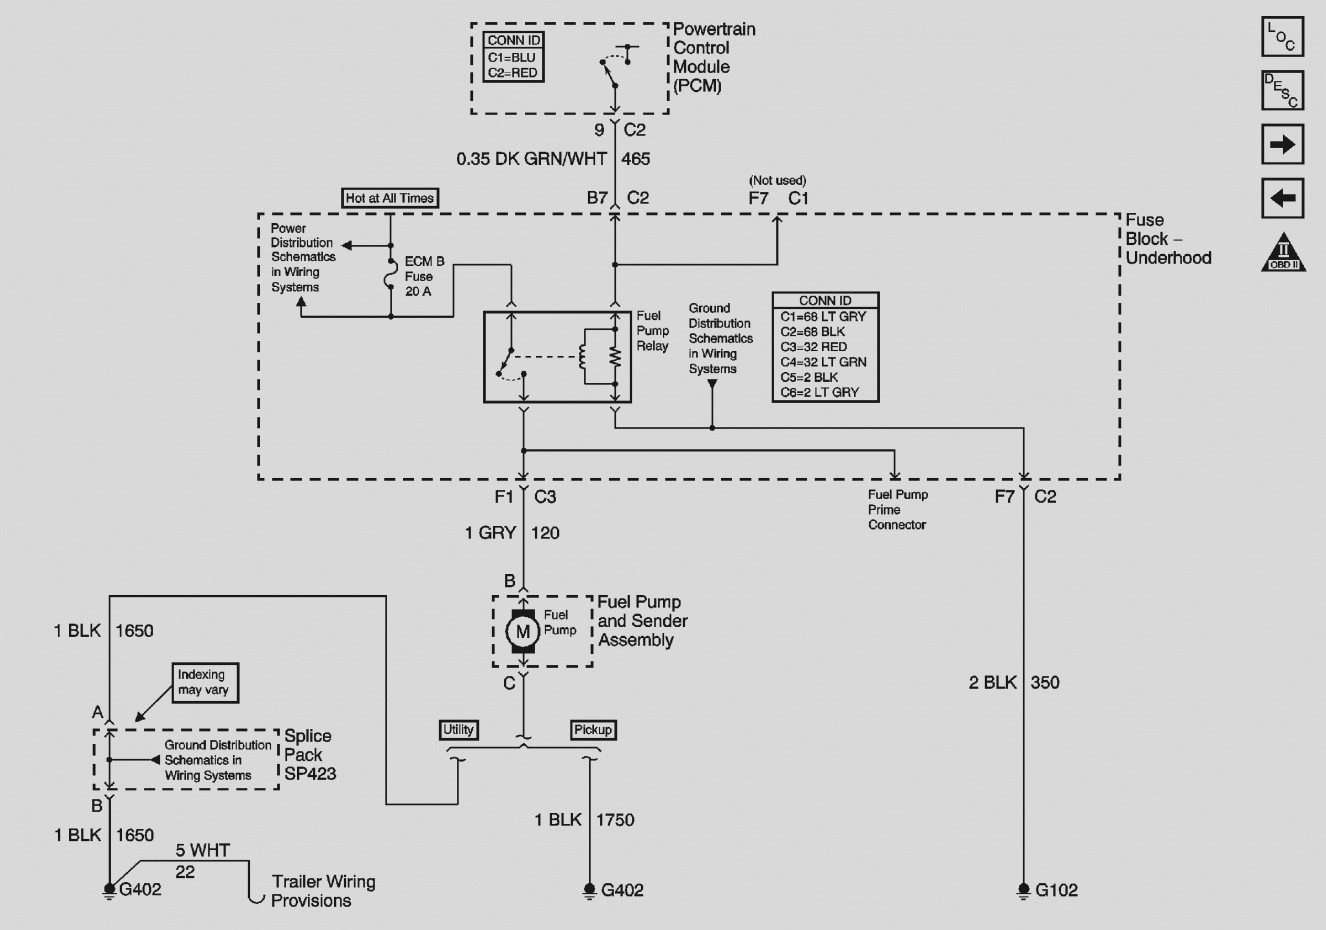 Full Size of Wiring Diagram 2000 Chevy S10 Wiring Diagram Lovely 2000 Chevy Cavalier Wiring